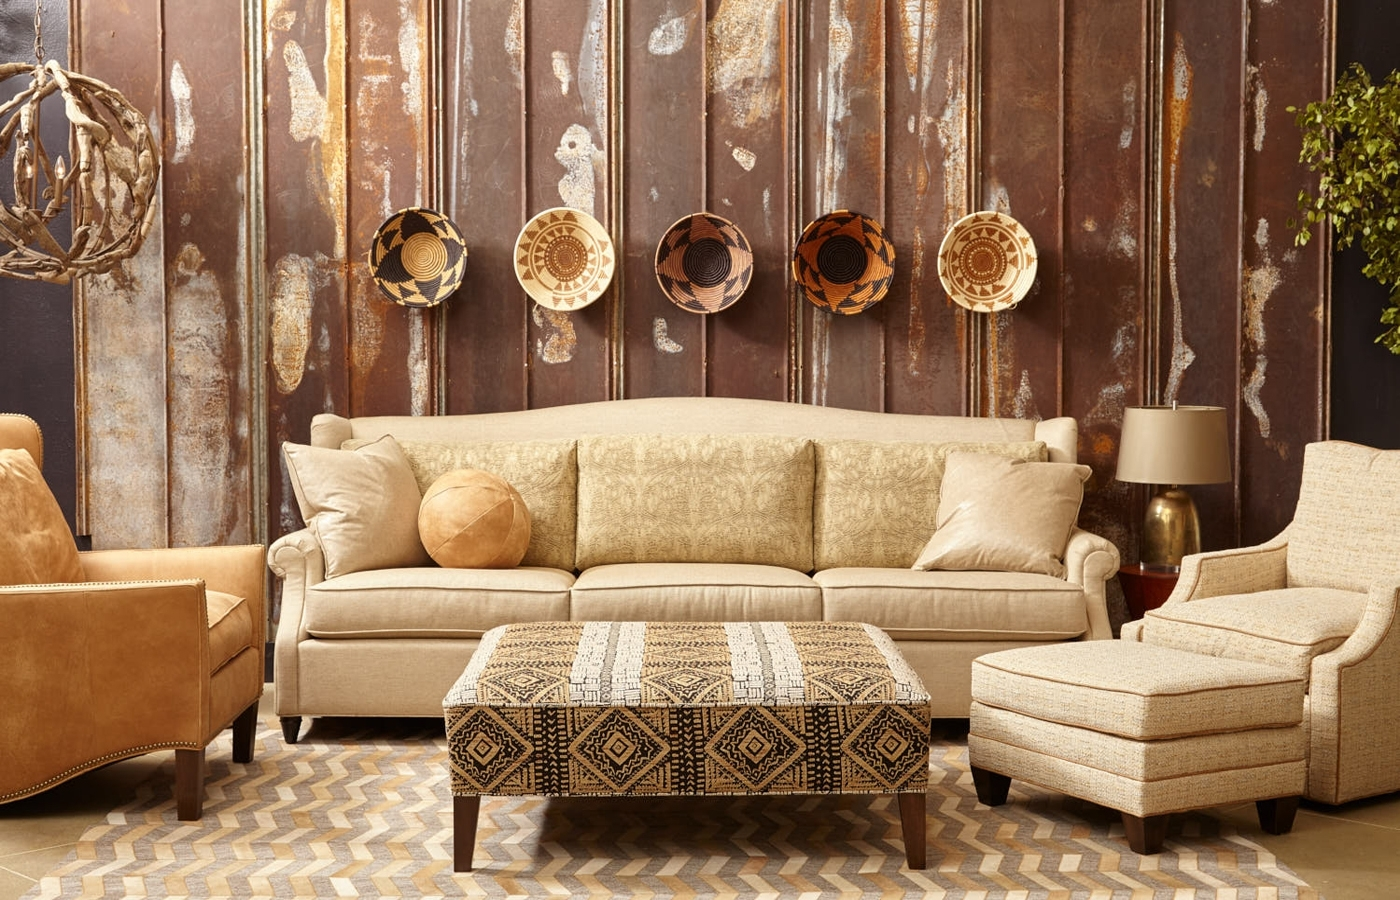 10 ideas of norwalk sofas sofa ideas rh tany net Norwalk Furniture Fabric Samples Norwalk Loveseat